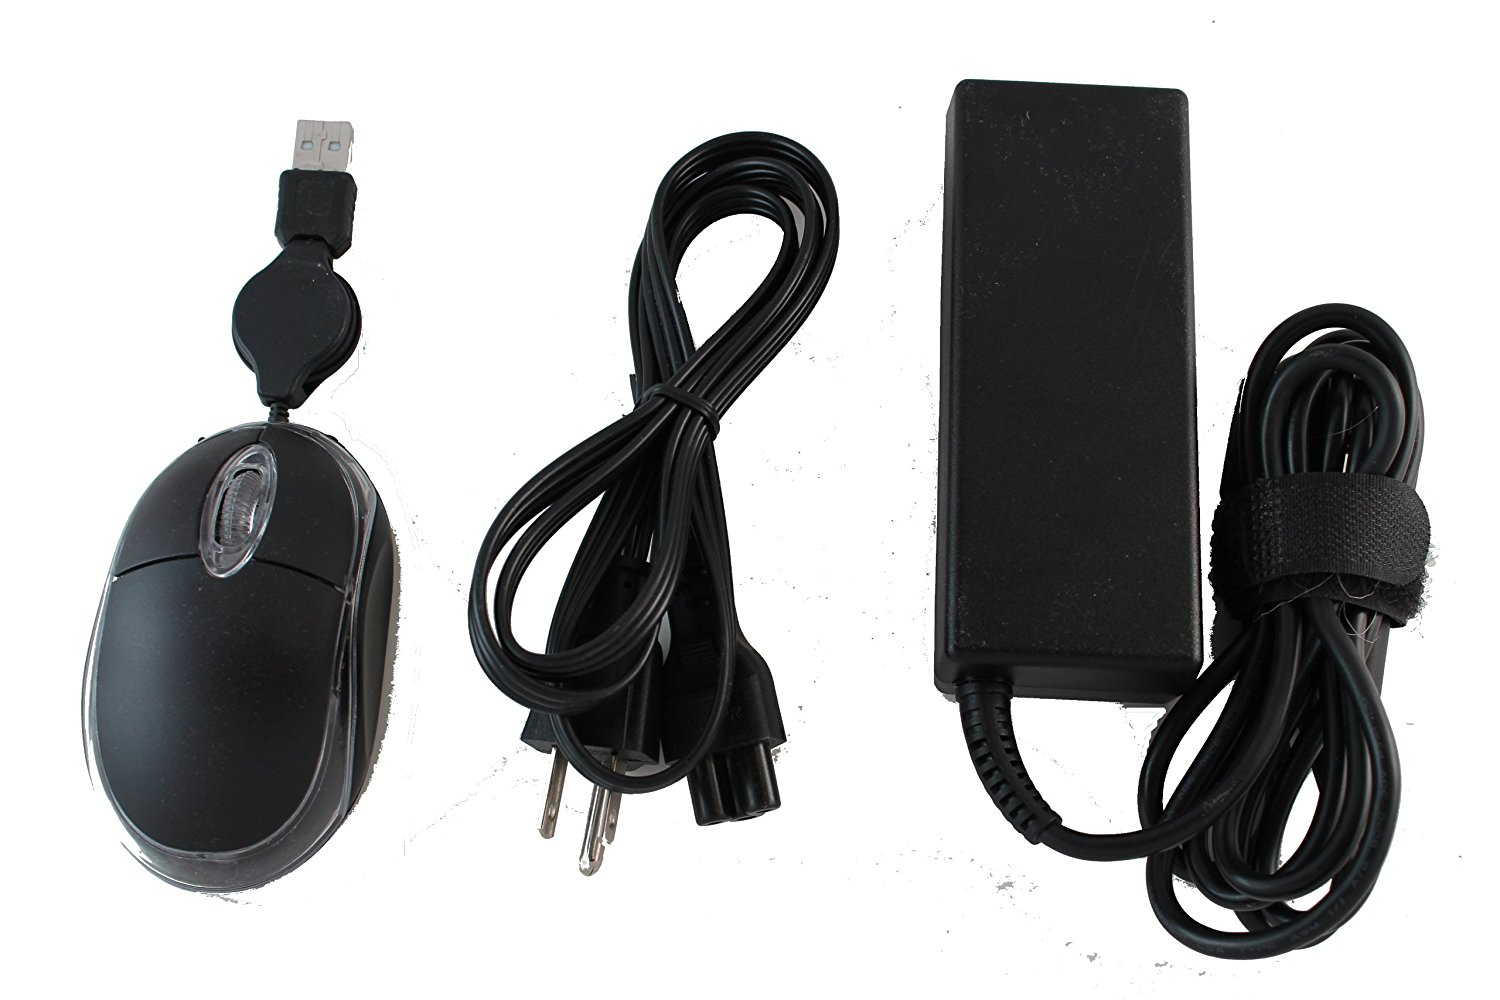 HP 19V 4.74A 90W Smart Pin Replacement AC adapter for HP Notebook Model: HP Pavilion DM4-2170en, HP Pavilion DM4-2170eo, HP Pavilion DM4-2175br, HP Pavilion DM4-2180ca, HP Pavilion DM4-2180la, HP Pavilion DM4-2180us, HP Pavilion DM4-2184nr, HP Pavilion DM4-2185br, HP Pavilion DM4-2185ca, HP